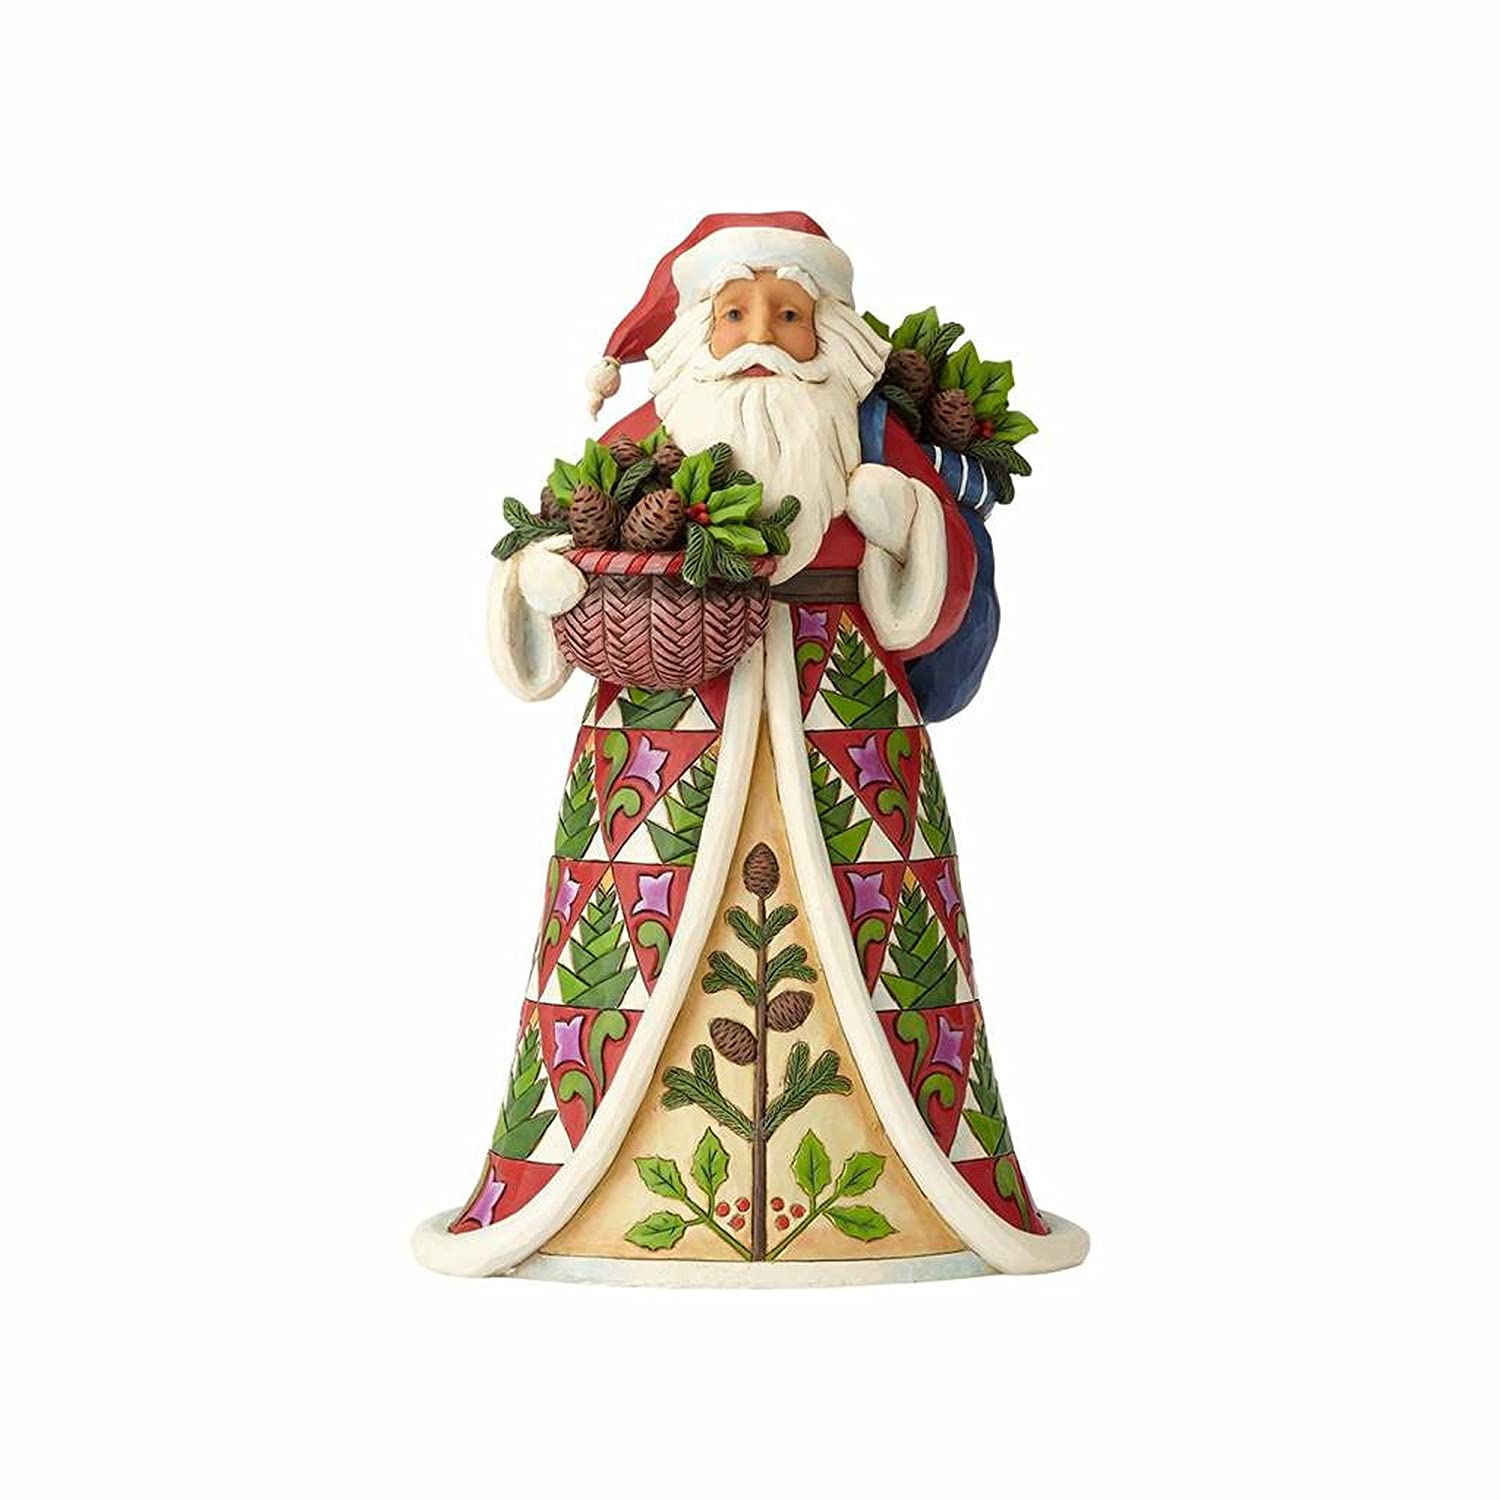 Heartwood Creek Santa with Pinecone Basket Figurine Decorazione, Multicolour, Taglia Unica Enesco 4058785